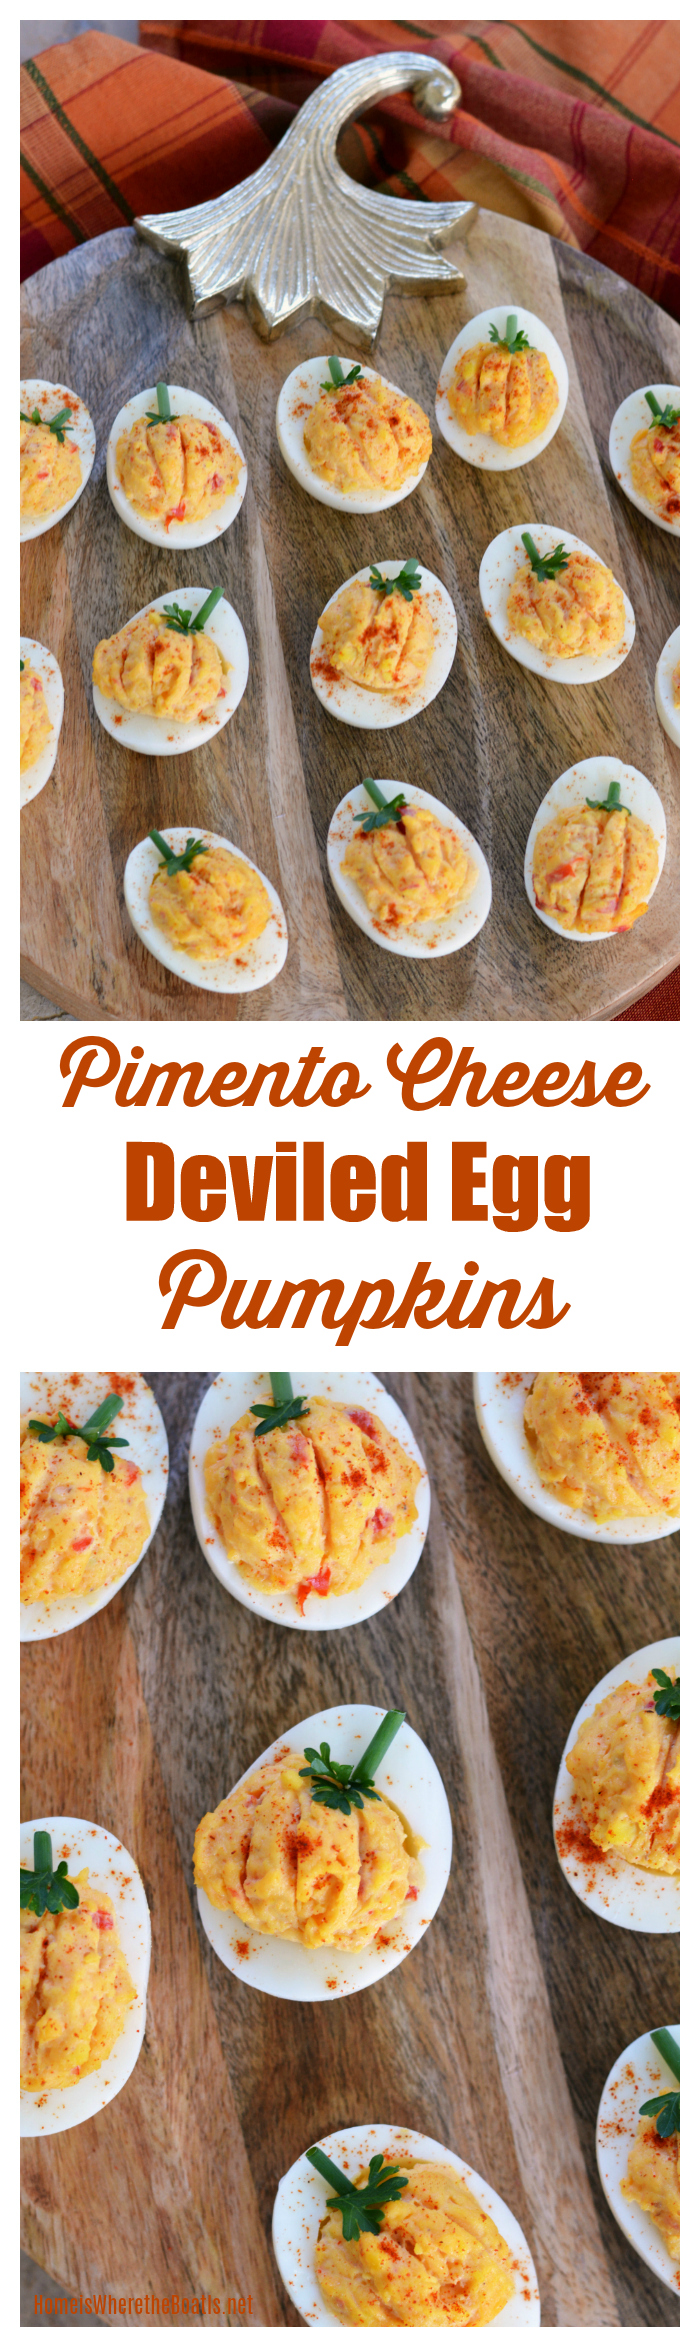 "Pimento Cheese Deviled Egg ""Pumpkins"" 